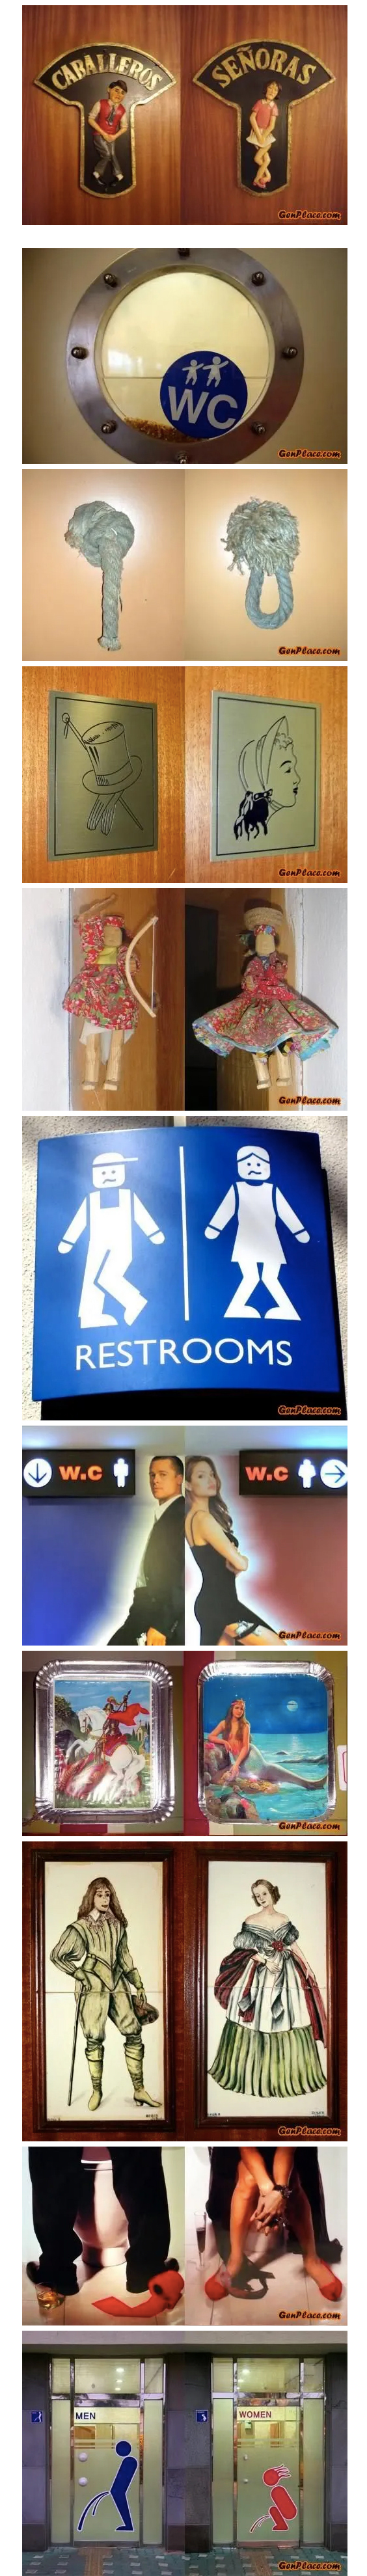 toilet_sign_01